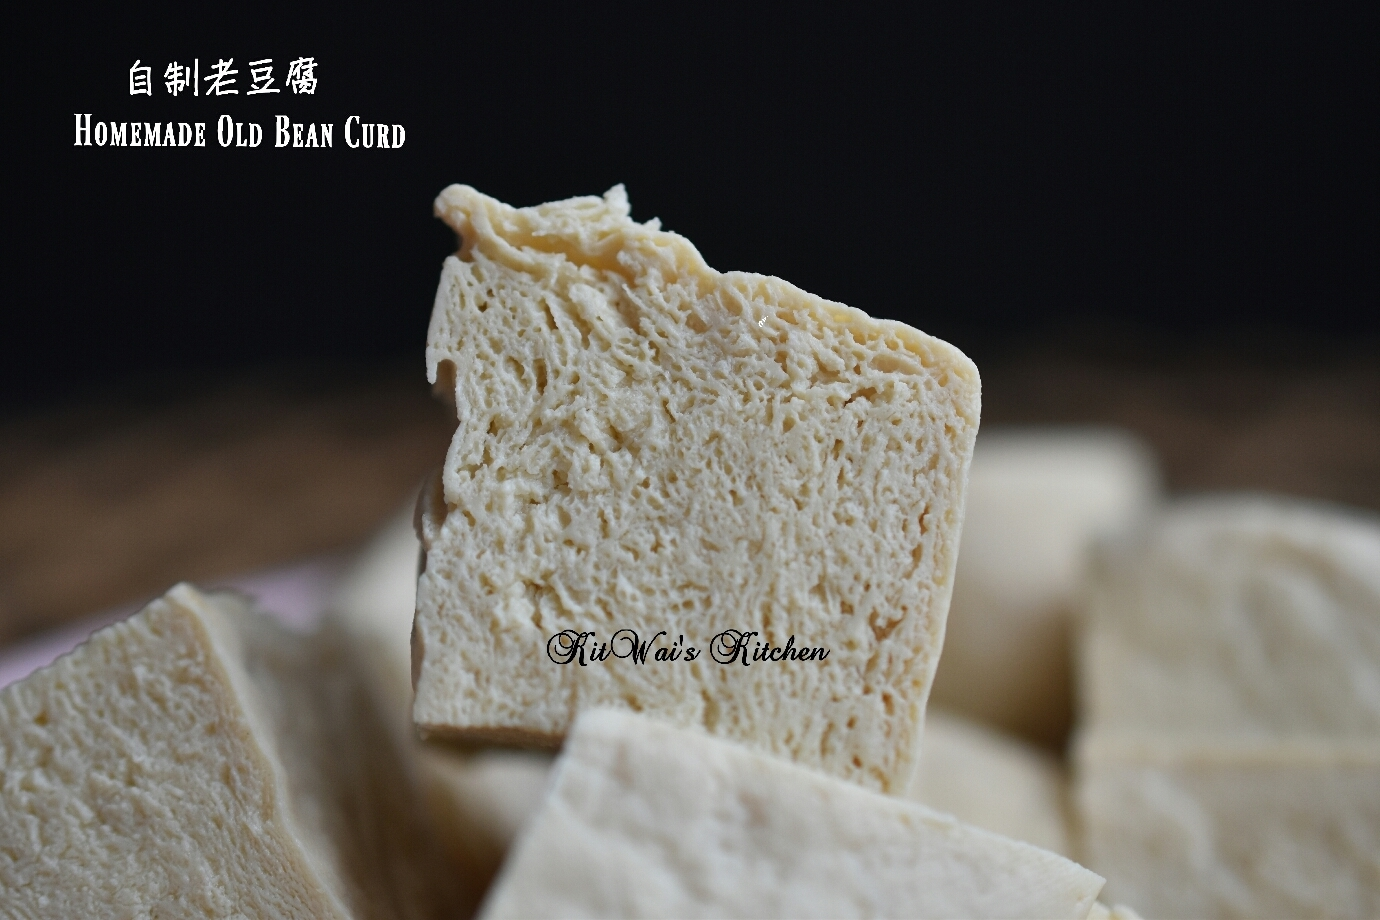 自制老豆腐 ~ Homemade Old Bean Curd